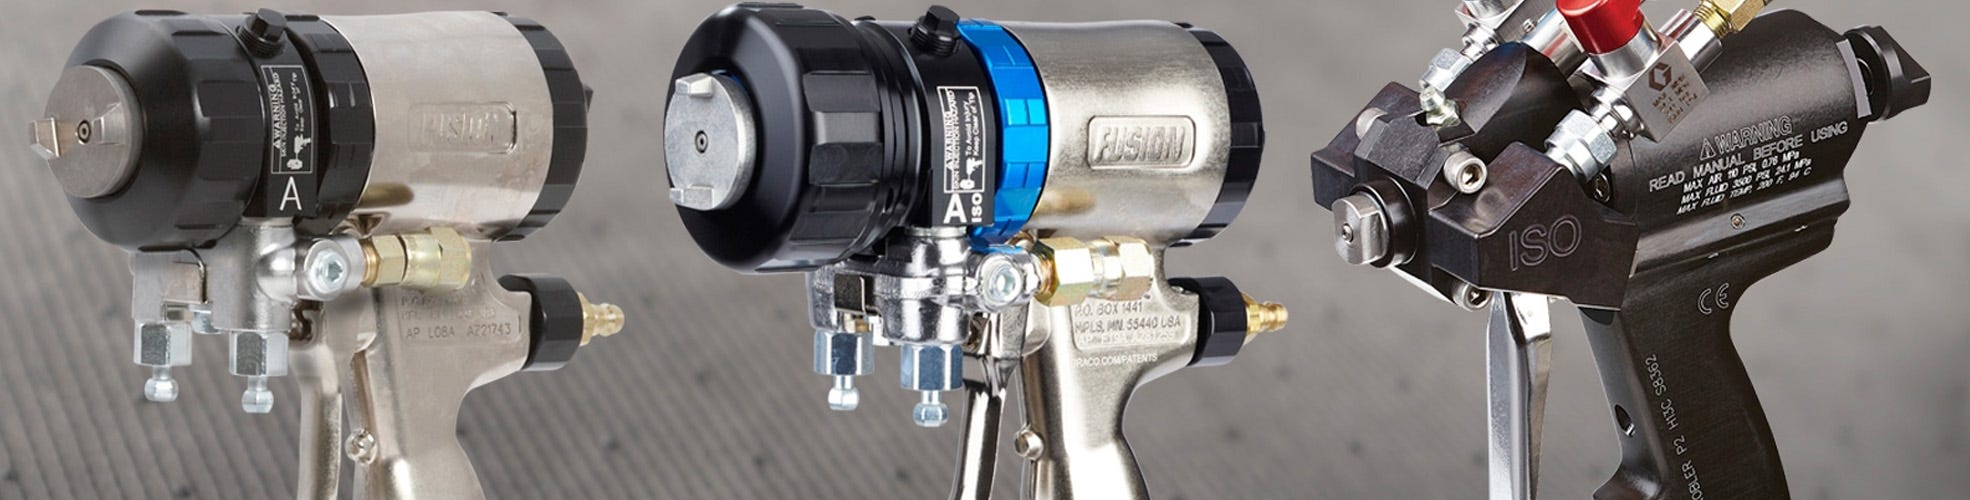 Graco Fusion Pro Connect Spray Gun